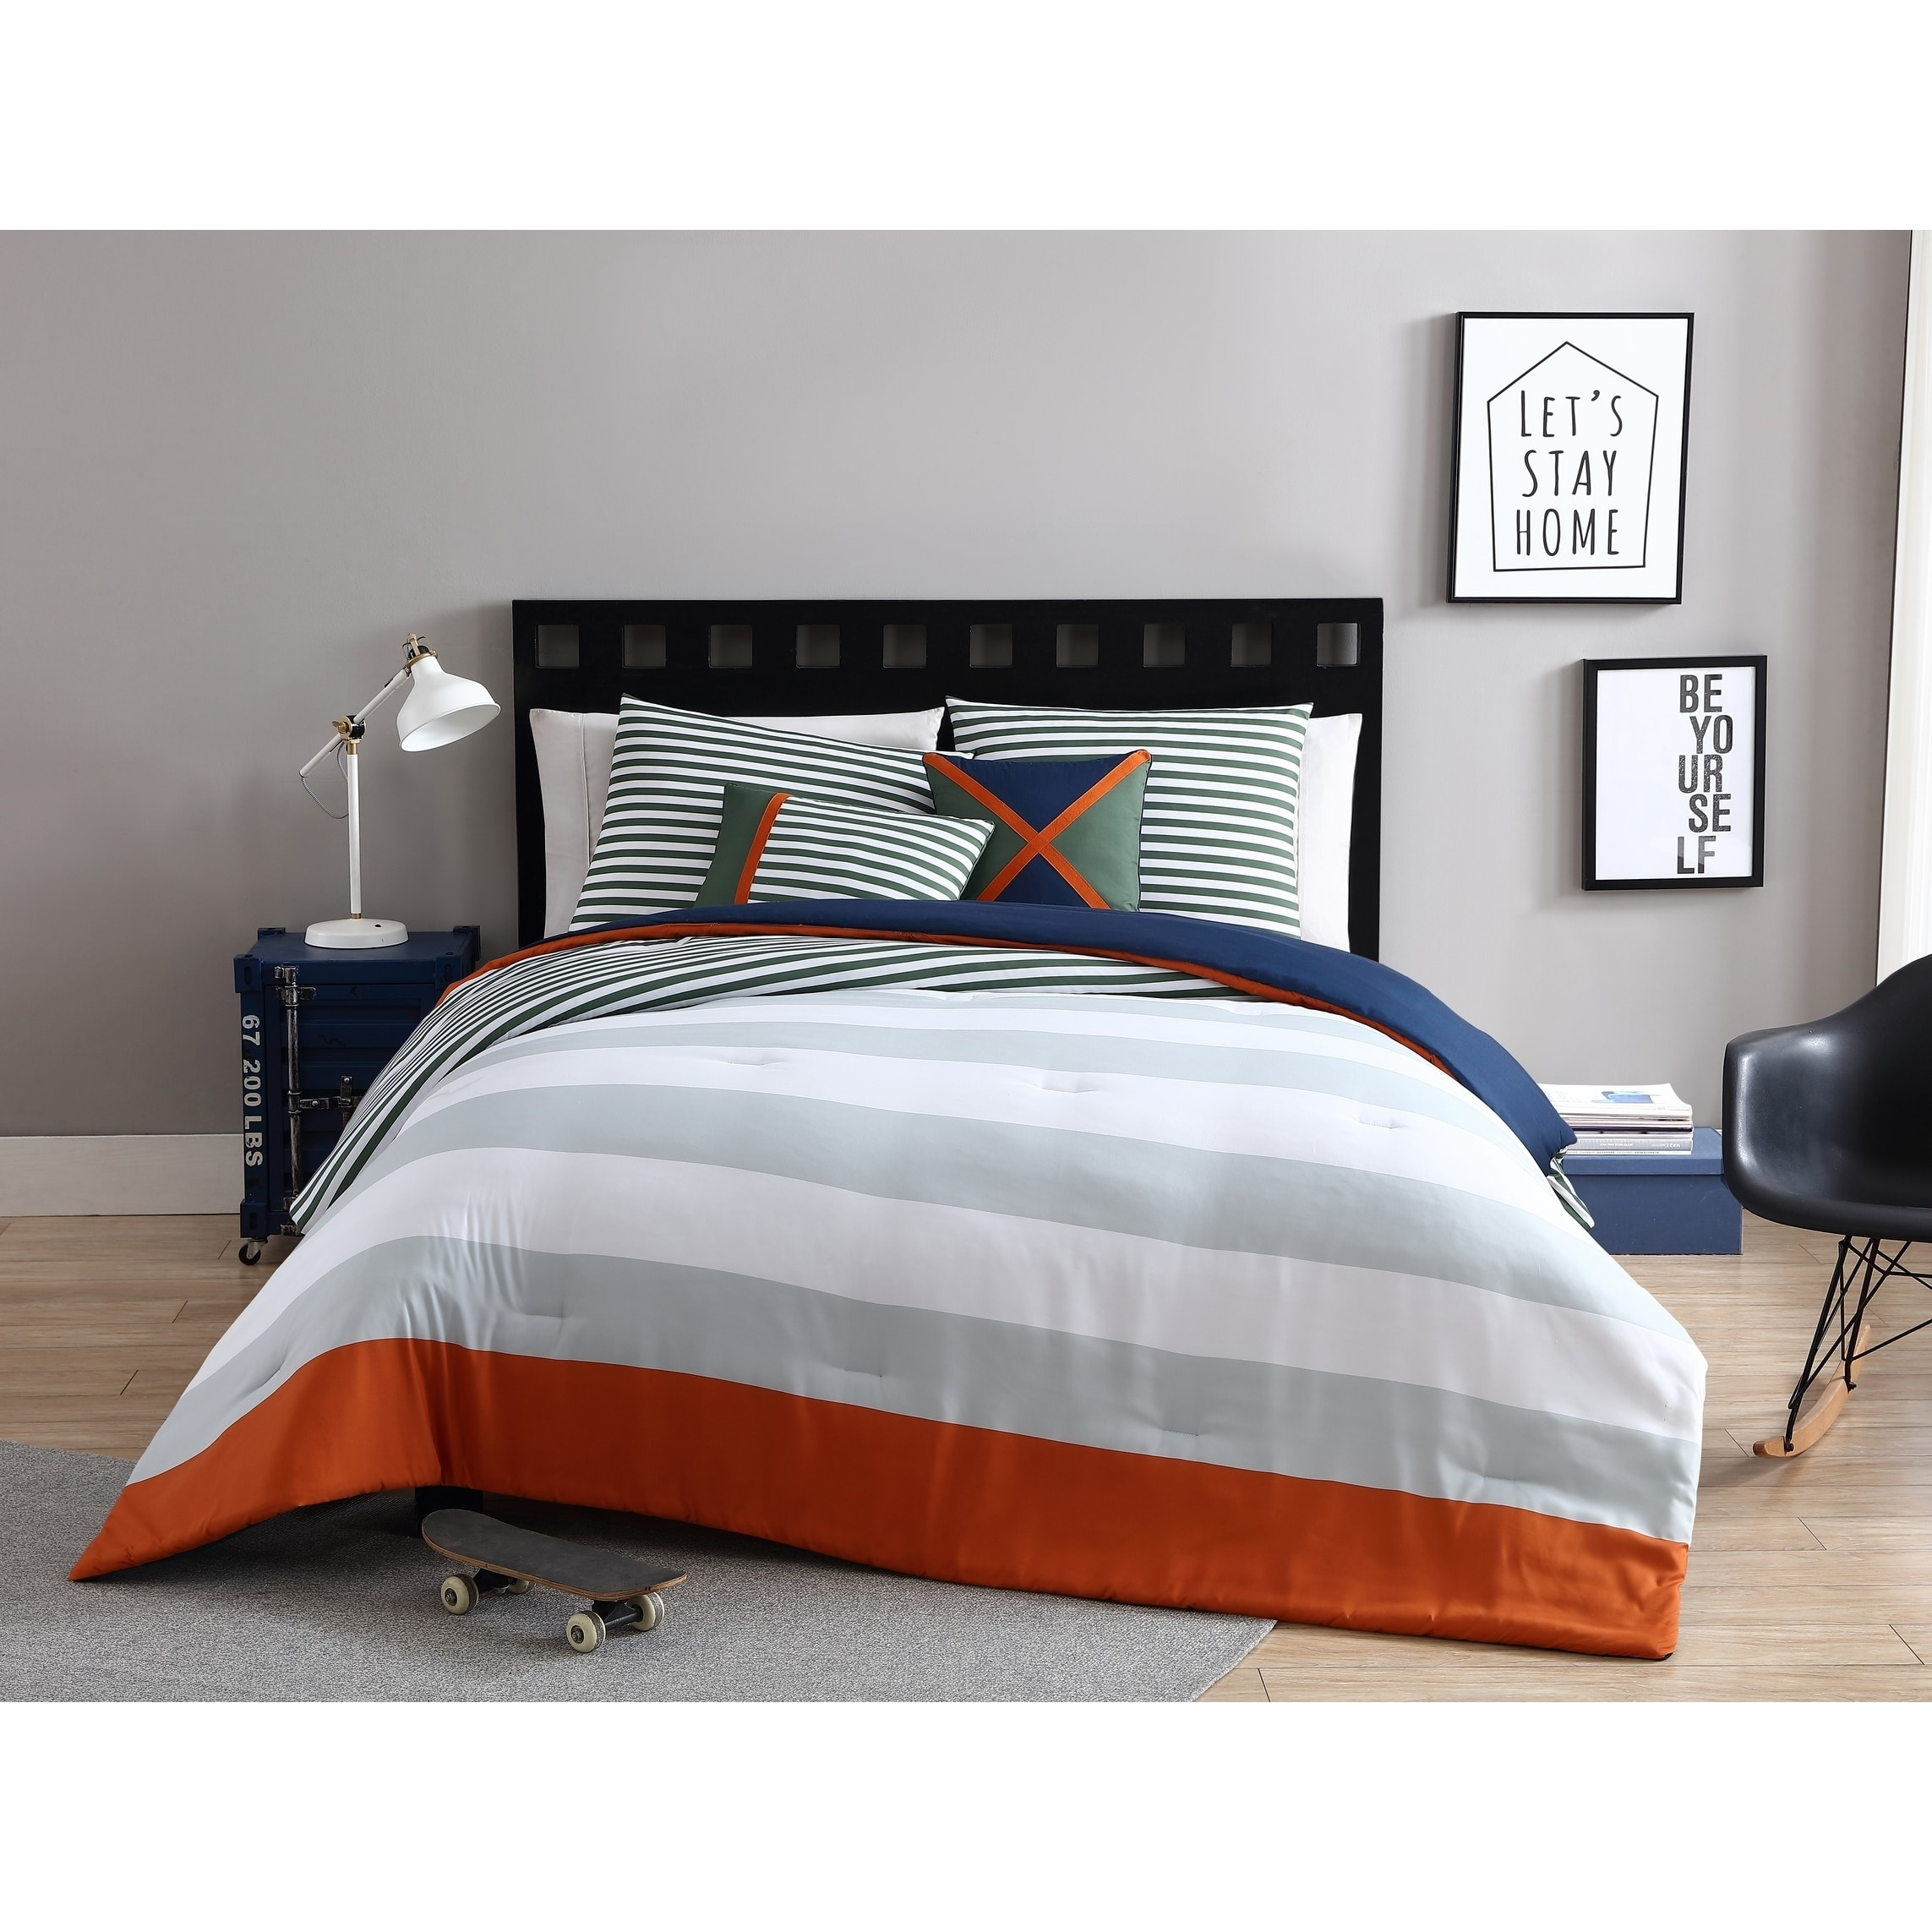 VCNY Home Orange/Green Boy Collegiate Stripe 4/5-Piece Comforter Bedding Set, Shams and Decorative Pillows Included